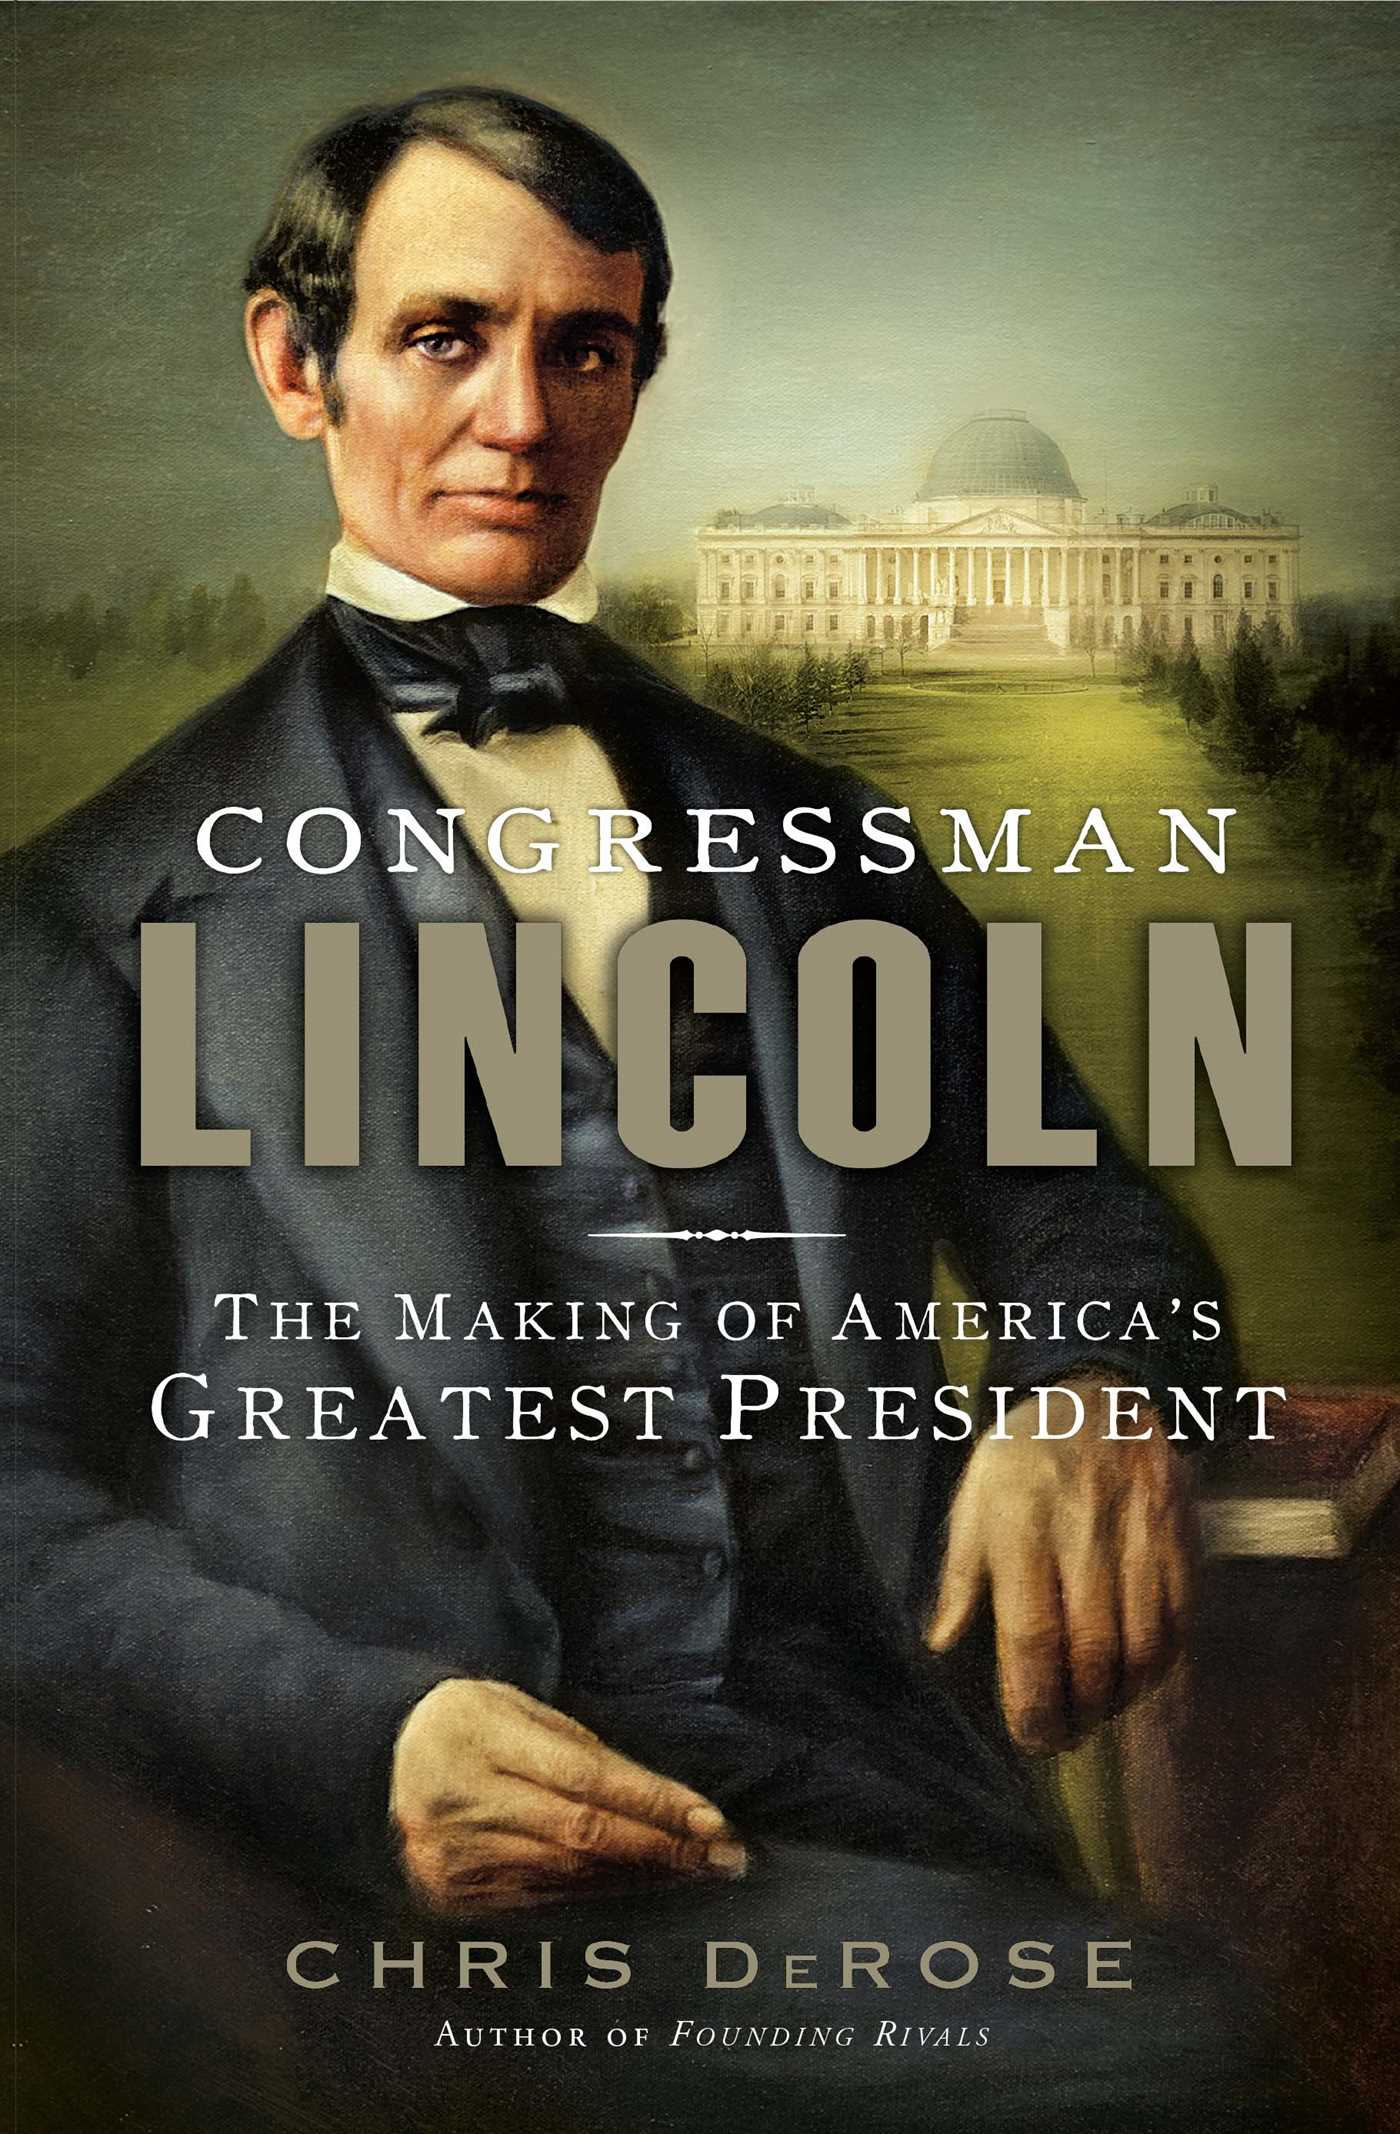 Congressman-lincoln-9781451697285_hr